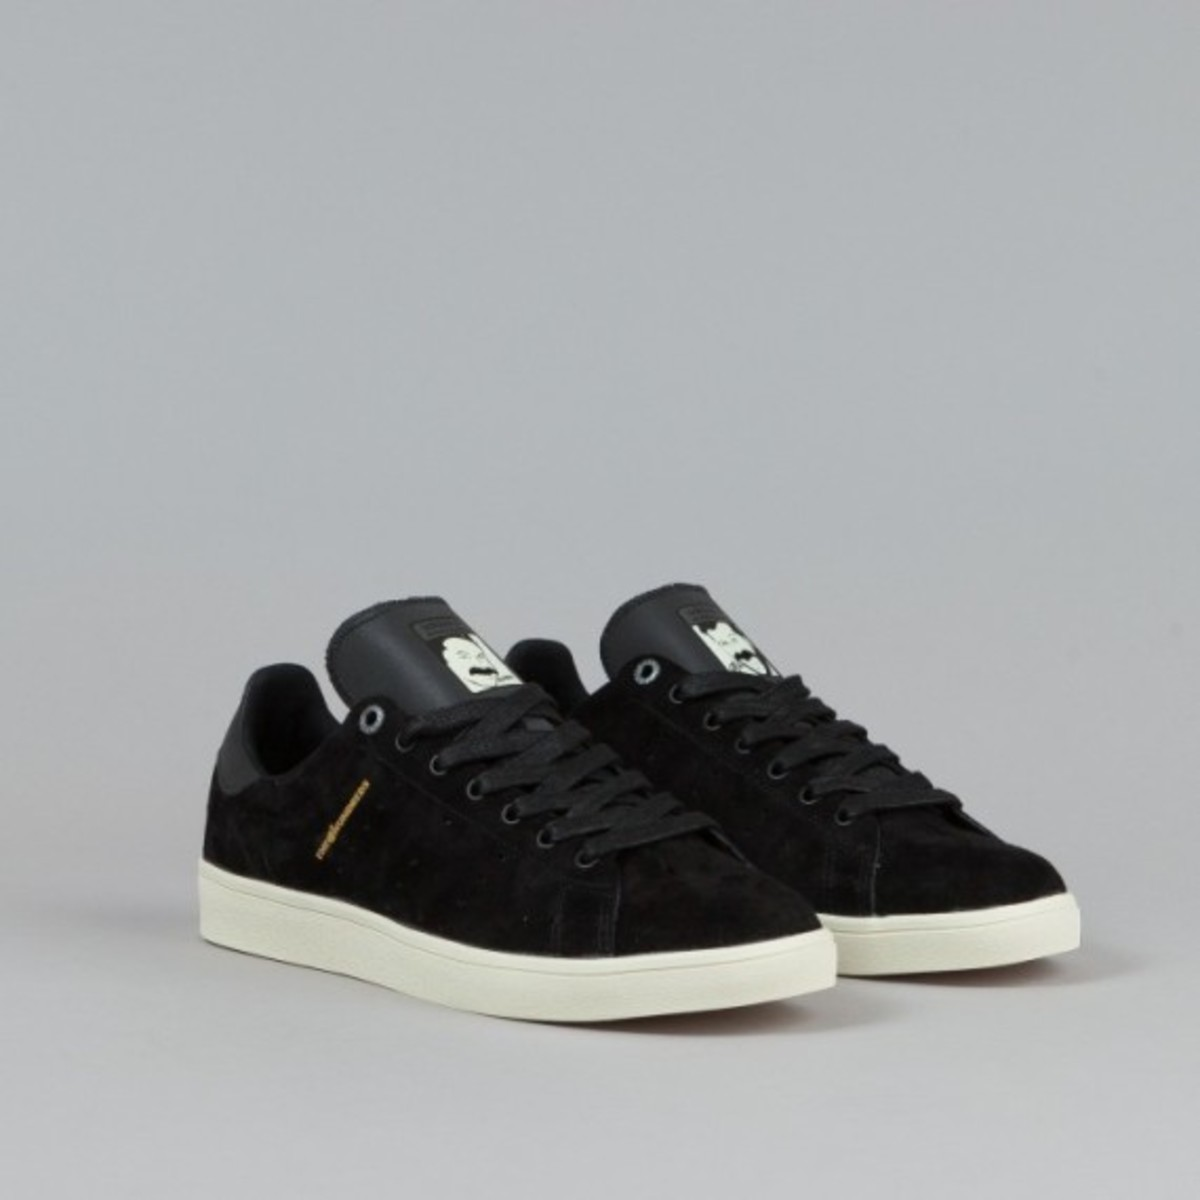 adidas-stan-smith-vulc-black-black-white-01